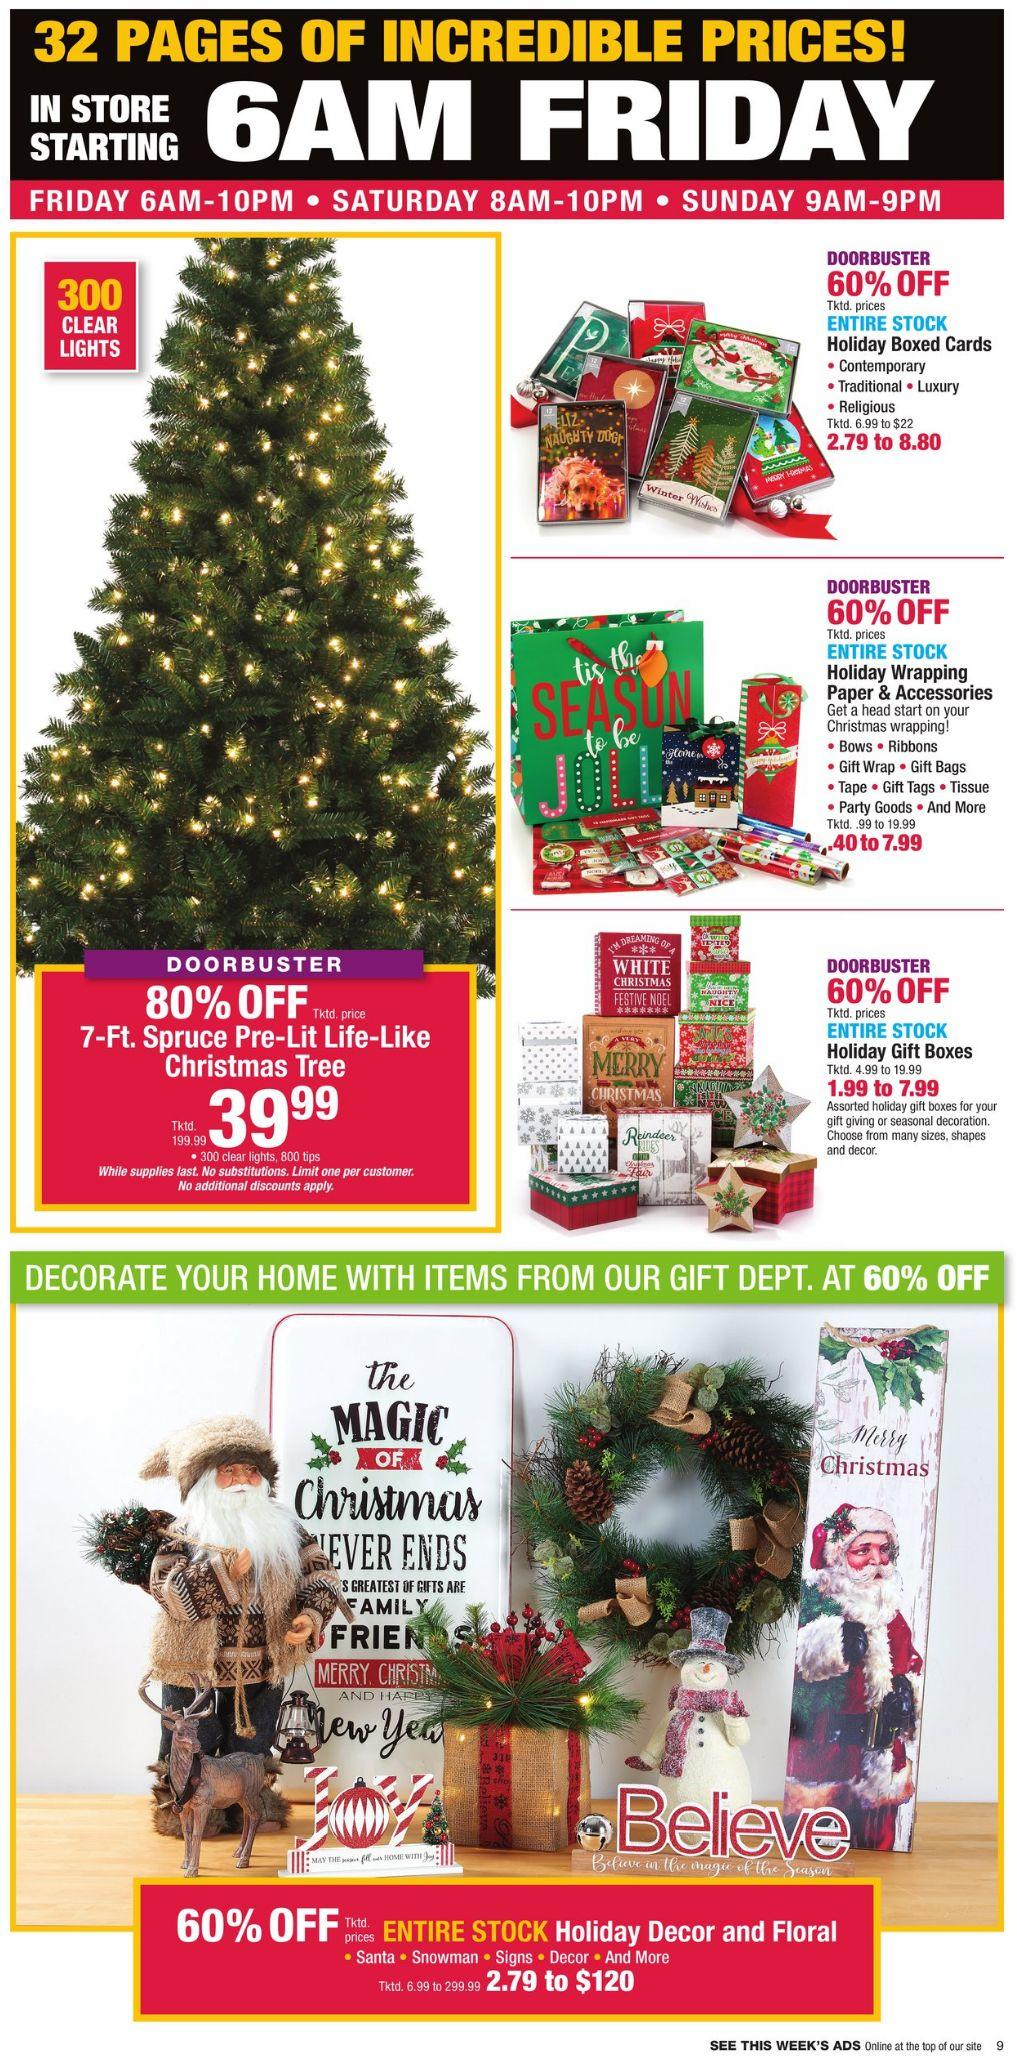 Boscov's Black Friday 2020 Page 9